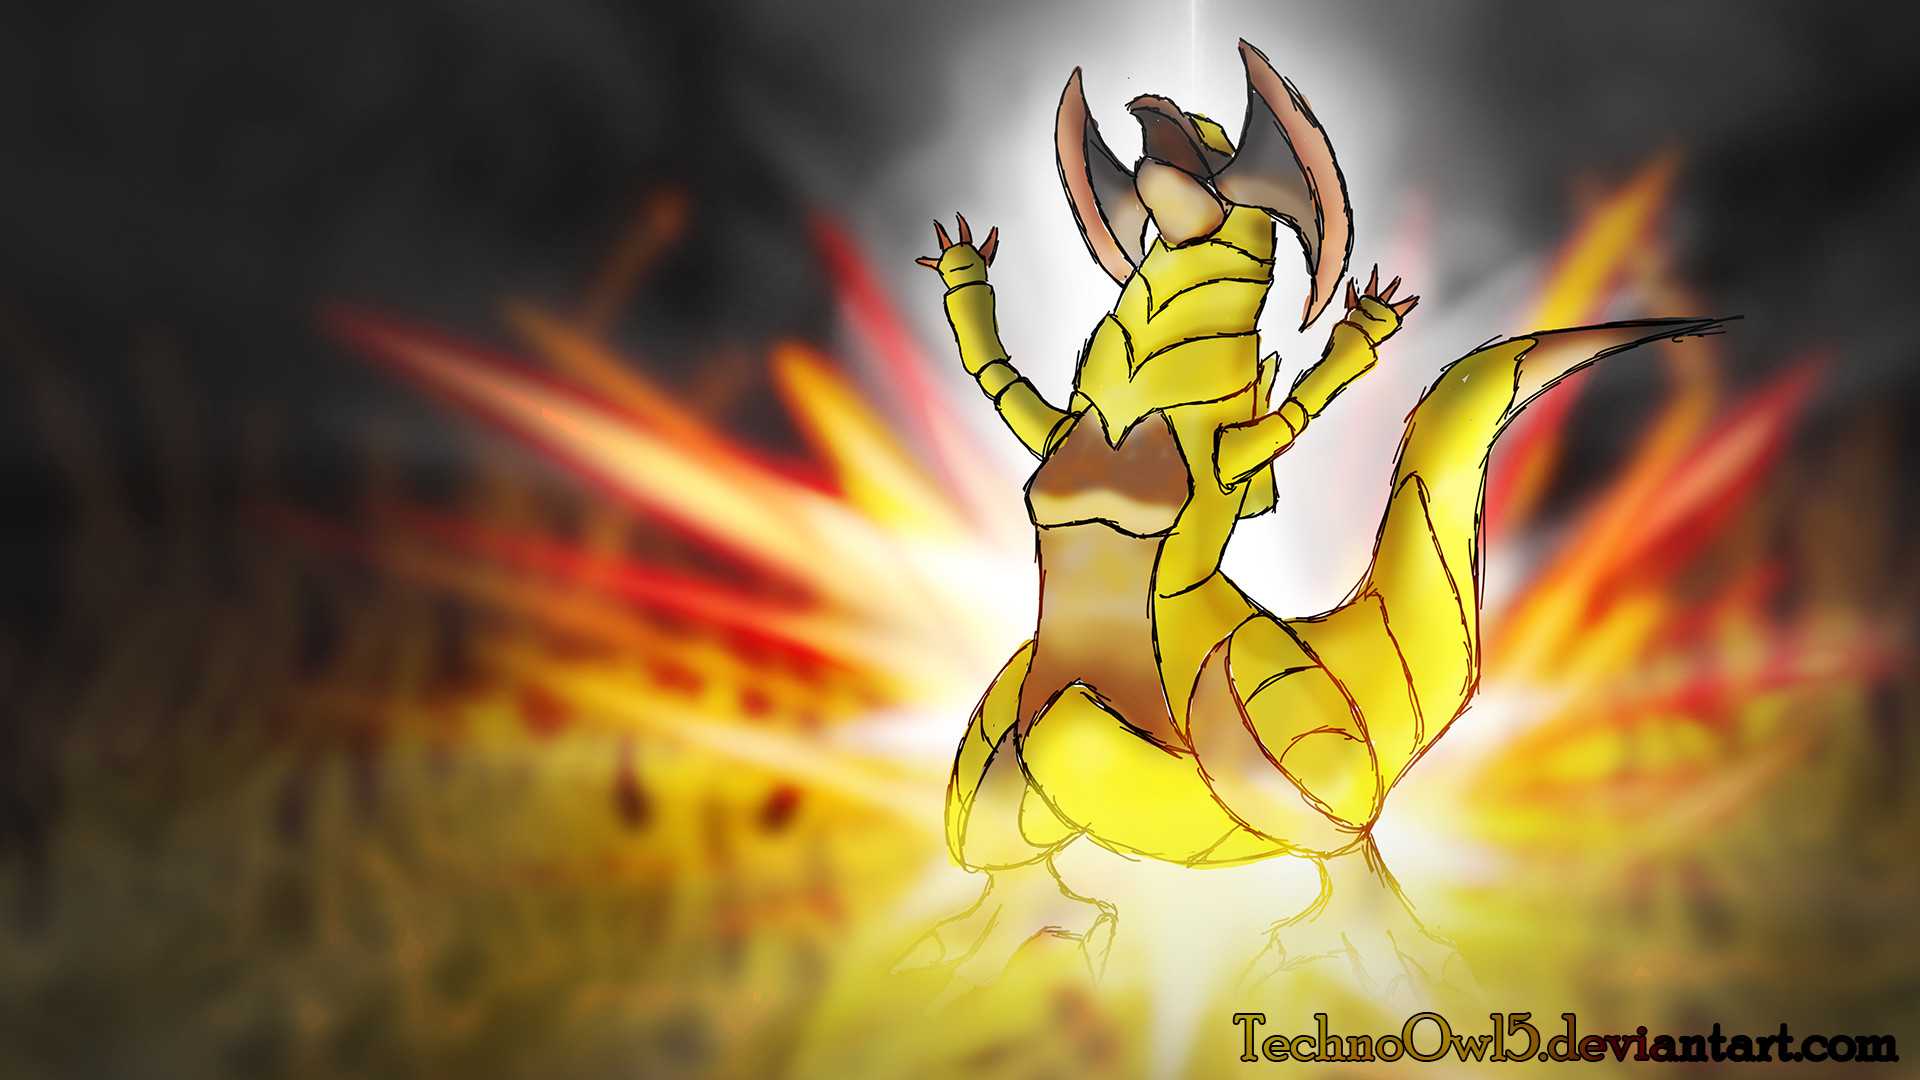 Res: 1920x1080, Haxorus Outrage by TechnoOwl5 Haxorus Outrage by TechnoOwl5